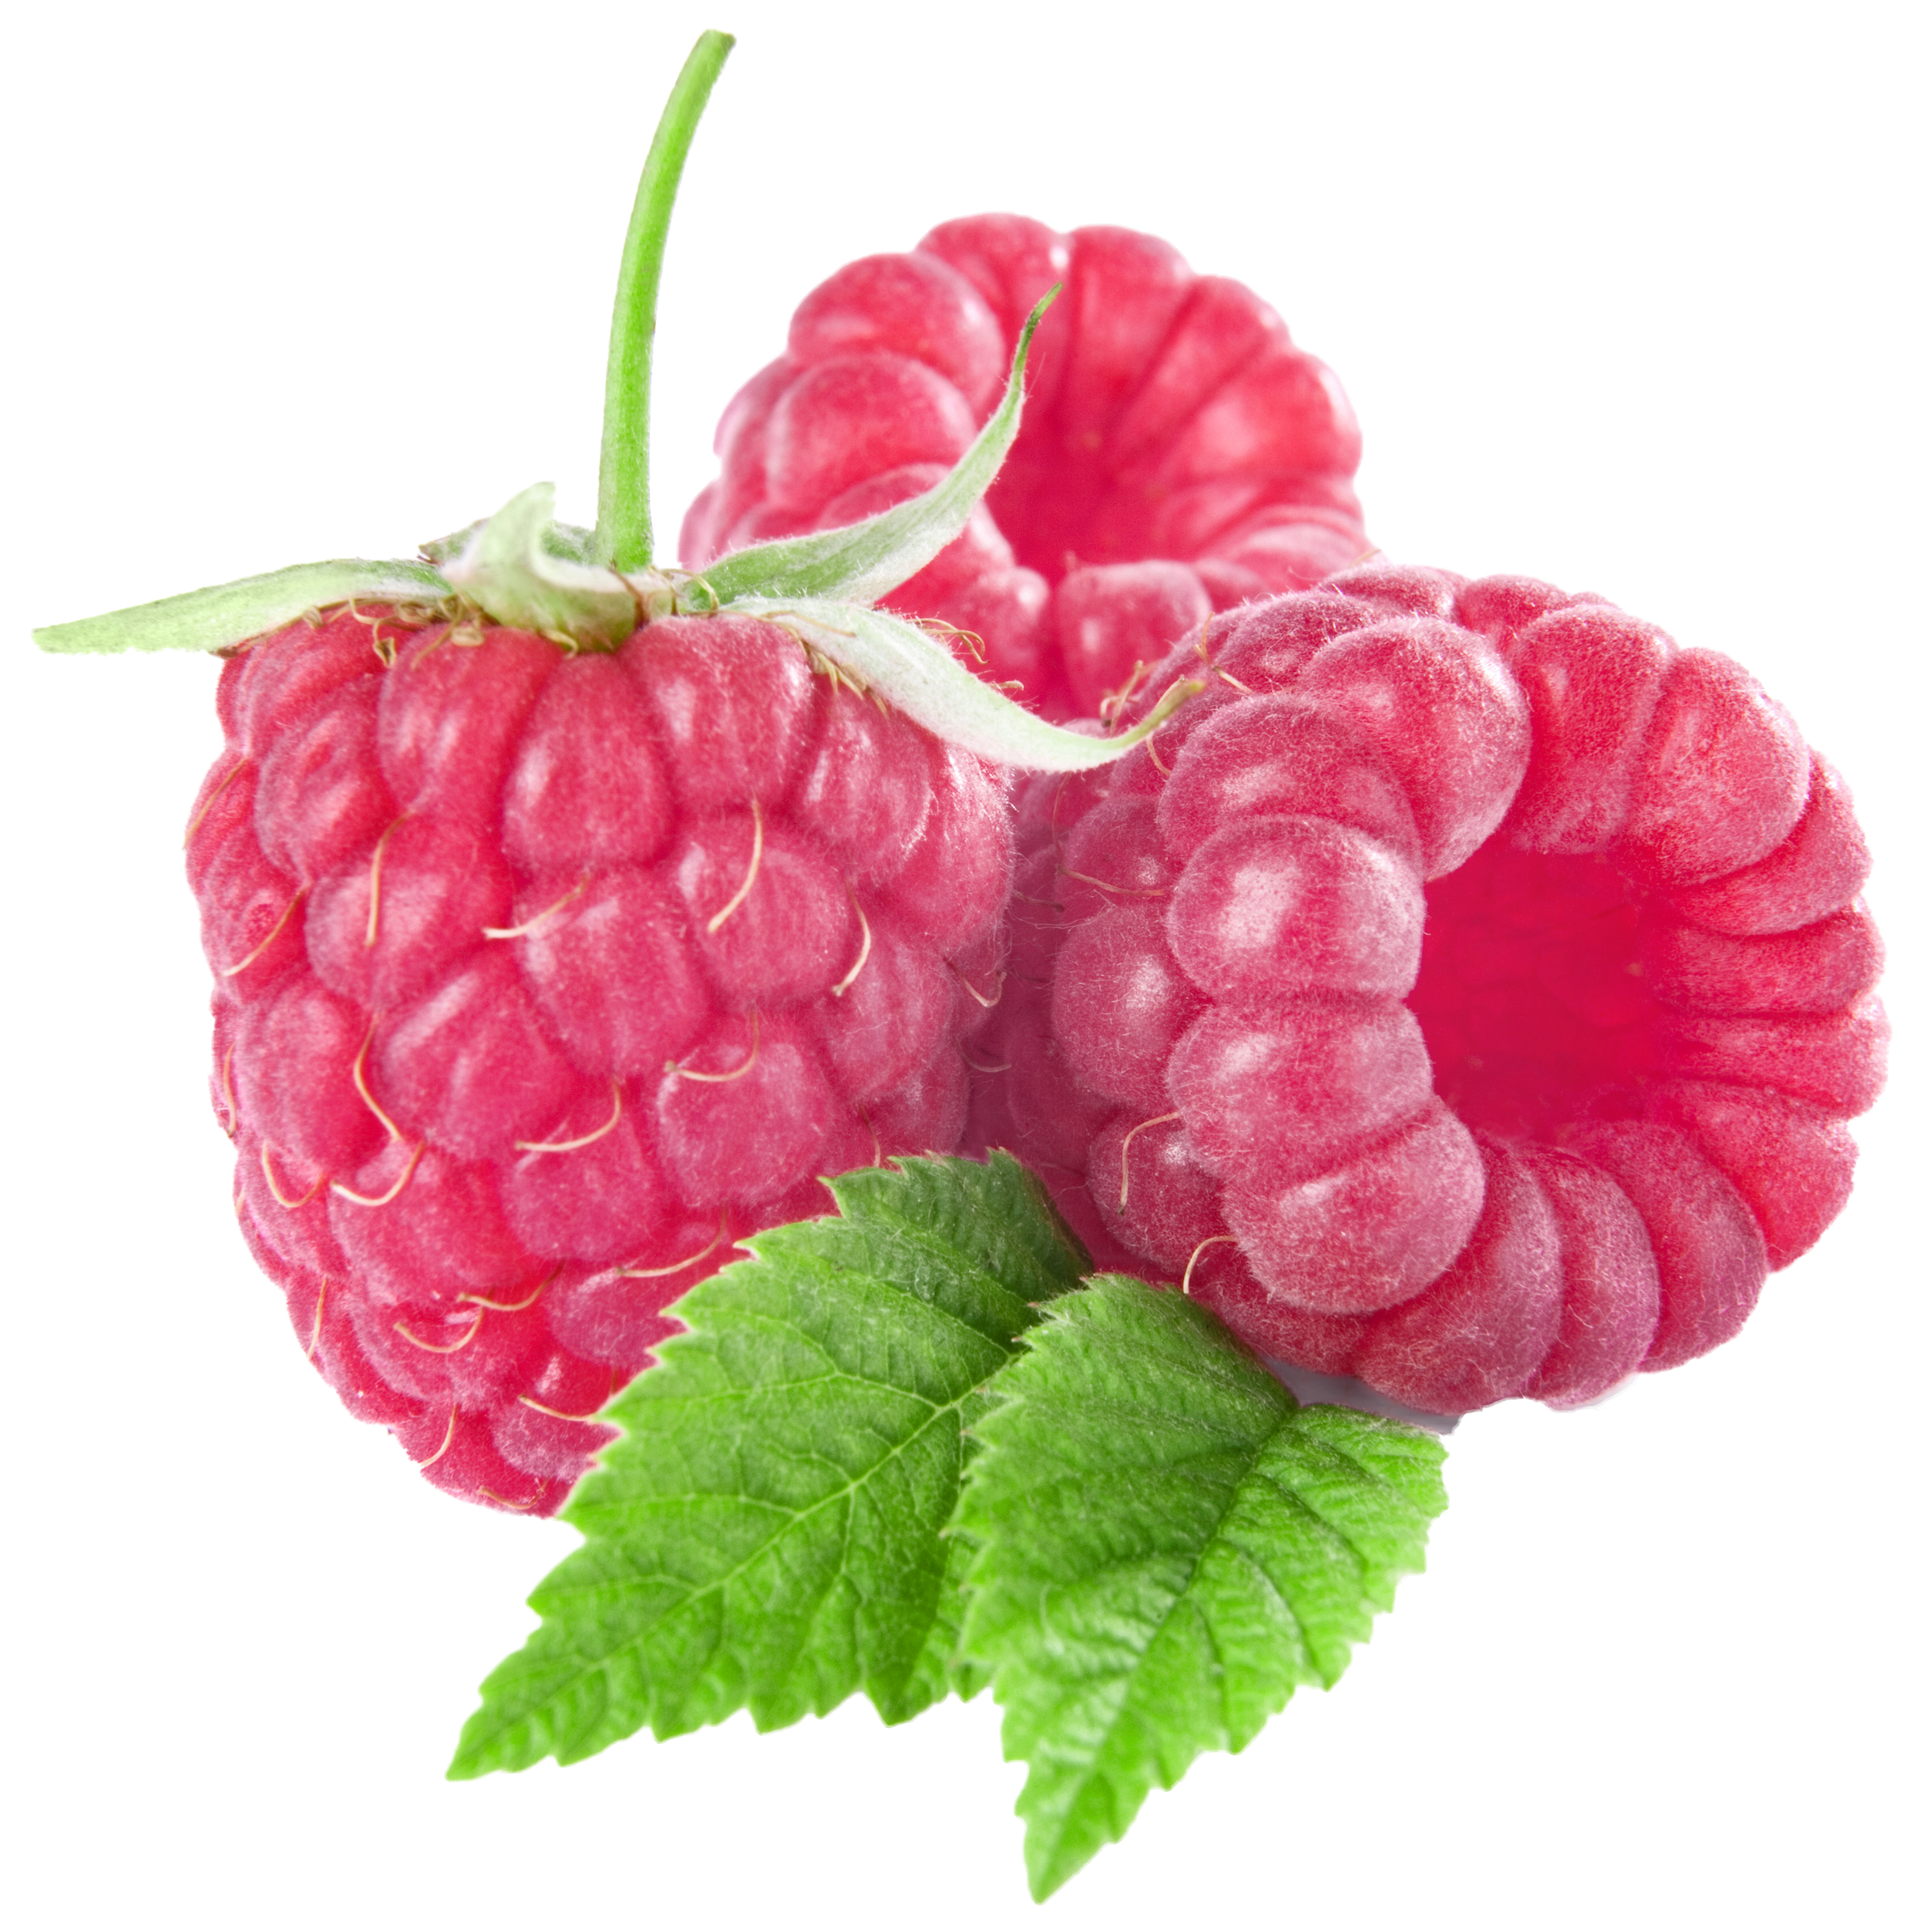 Fruit clipart raspberry. Large raspberries png gallery